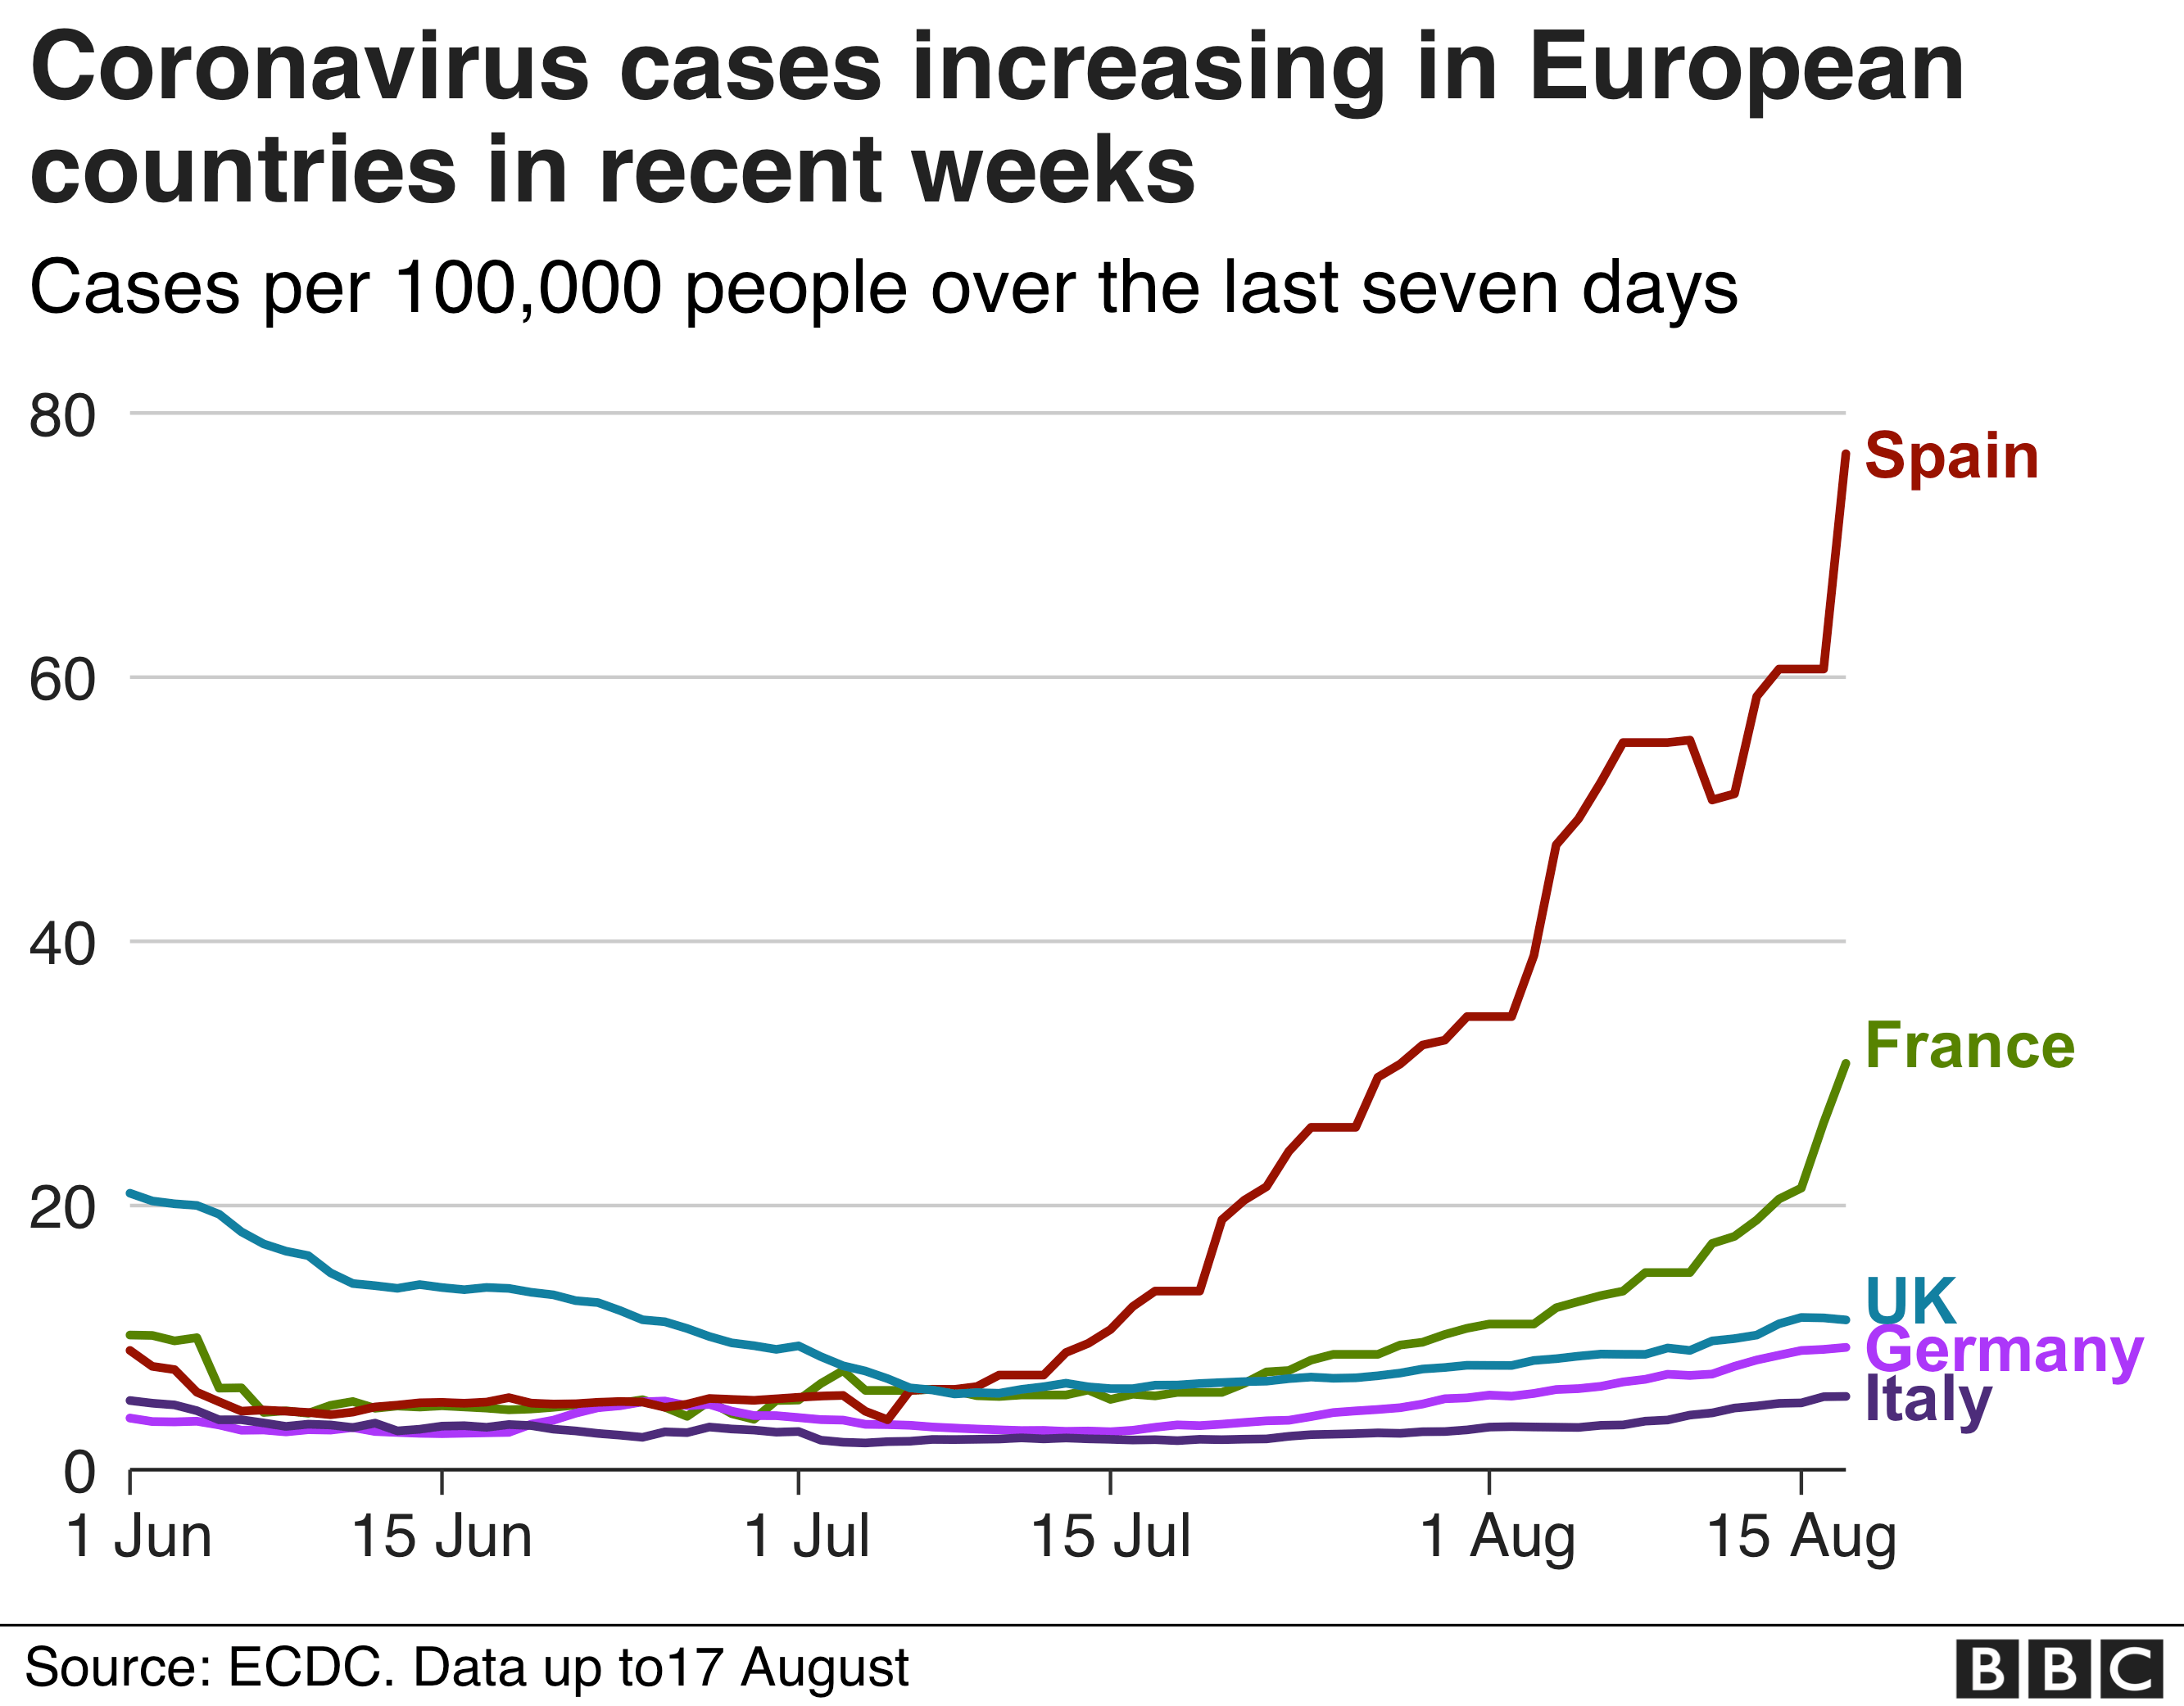 Chart shows cases rising sharply in Spain and France in recent weeks compared to the UK, Germany and Italy